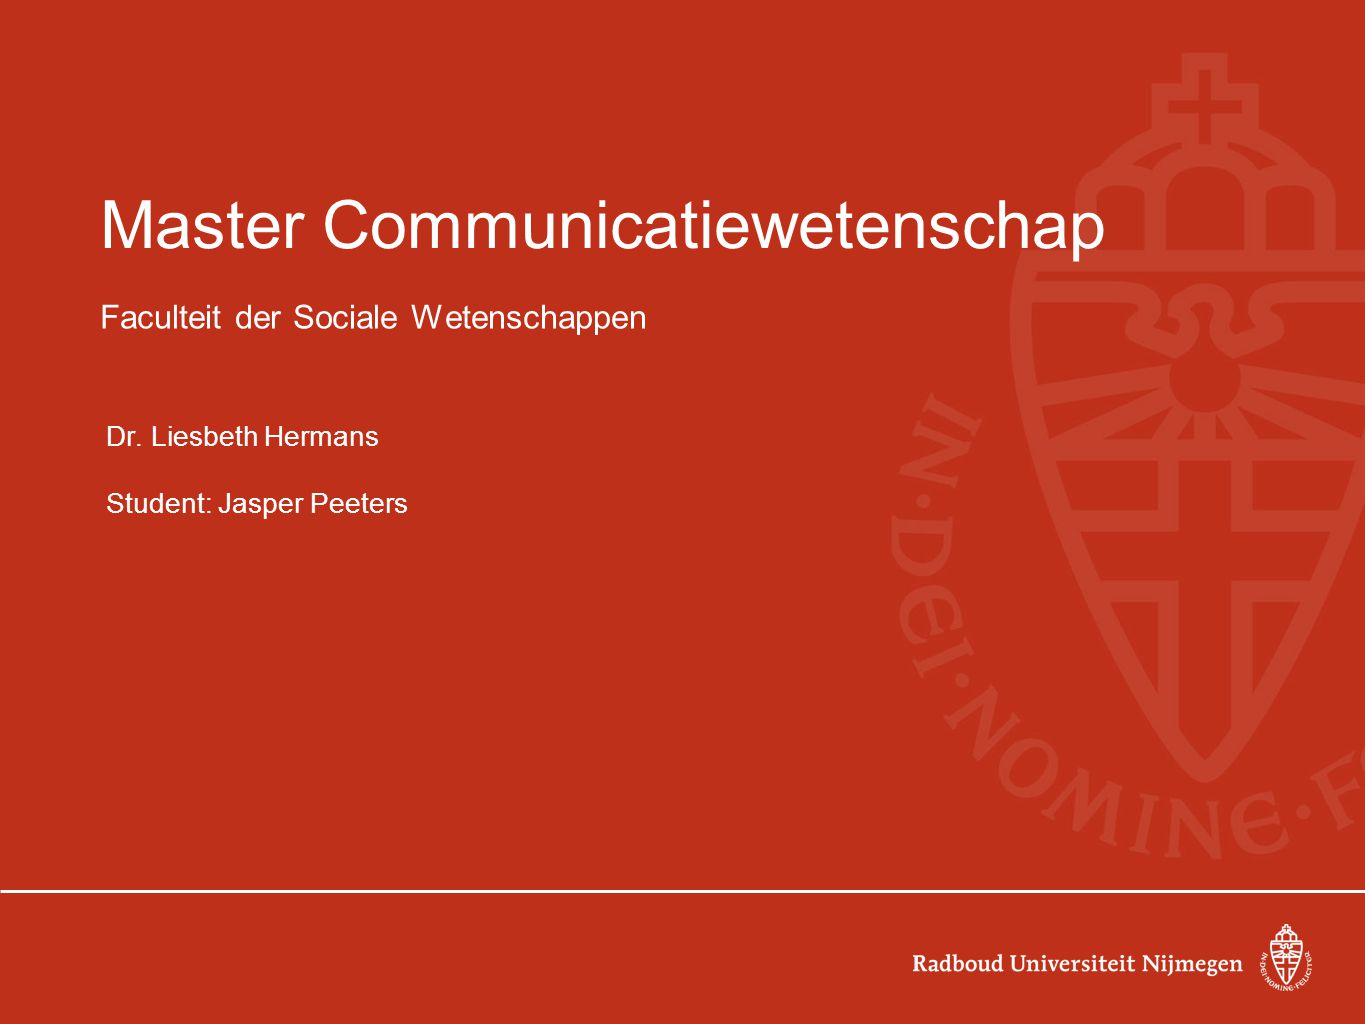 Master Communicatiewetenschap